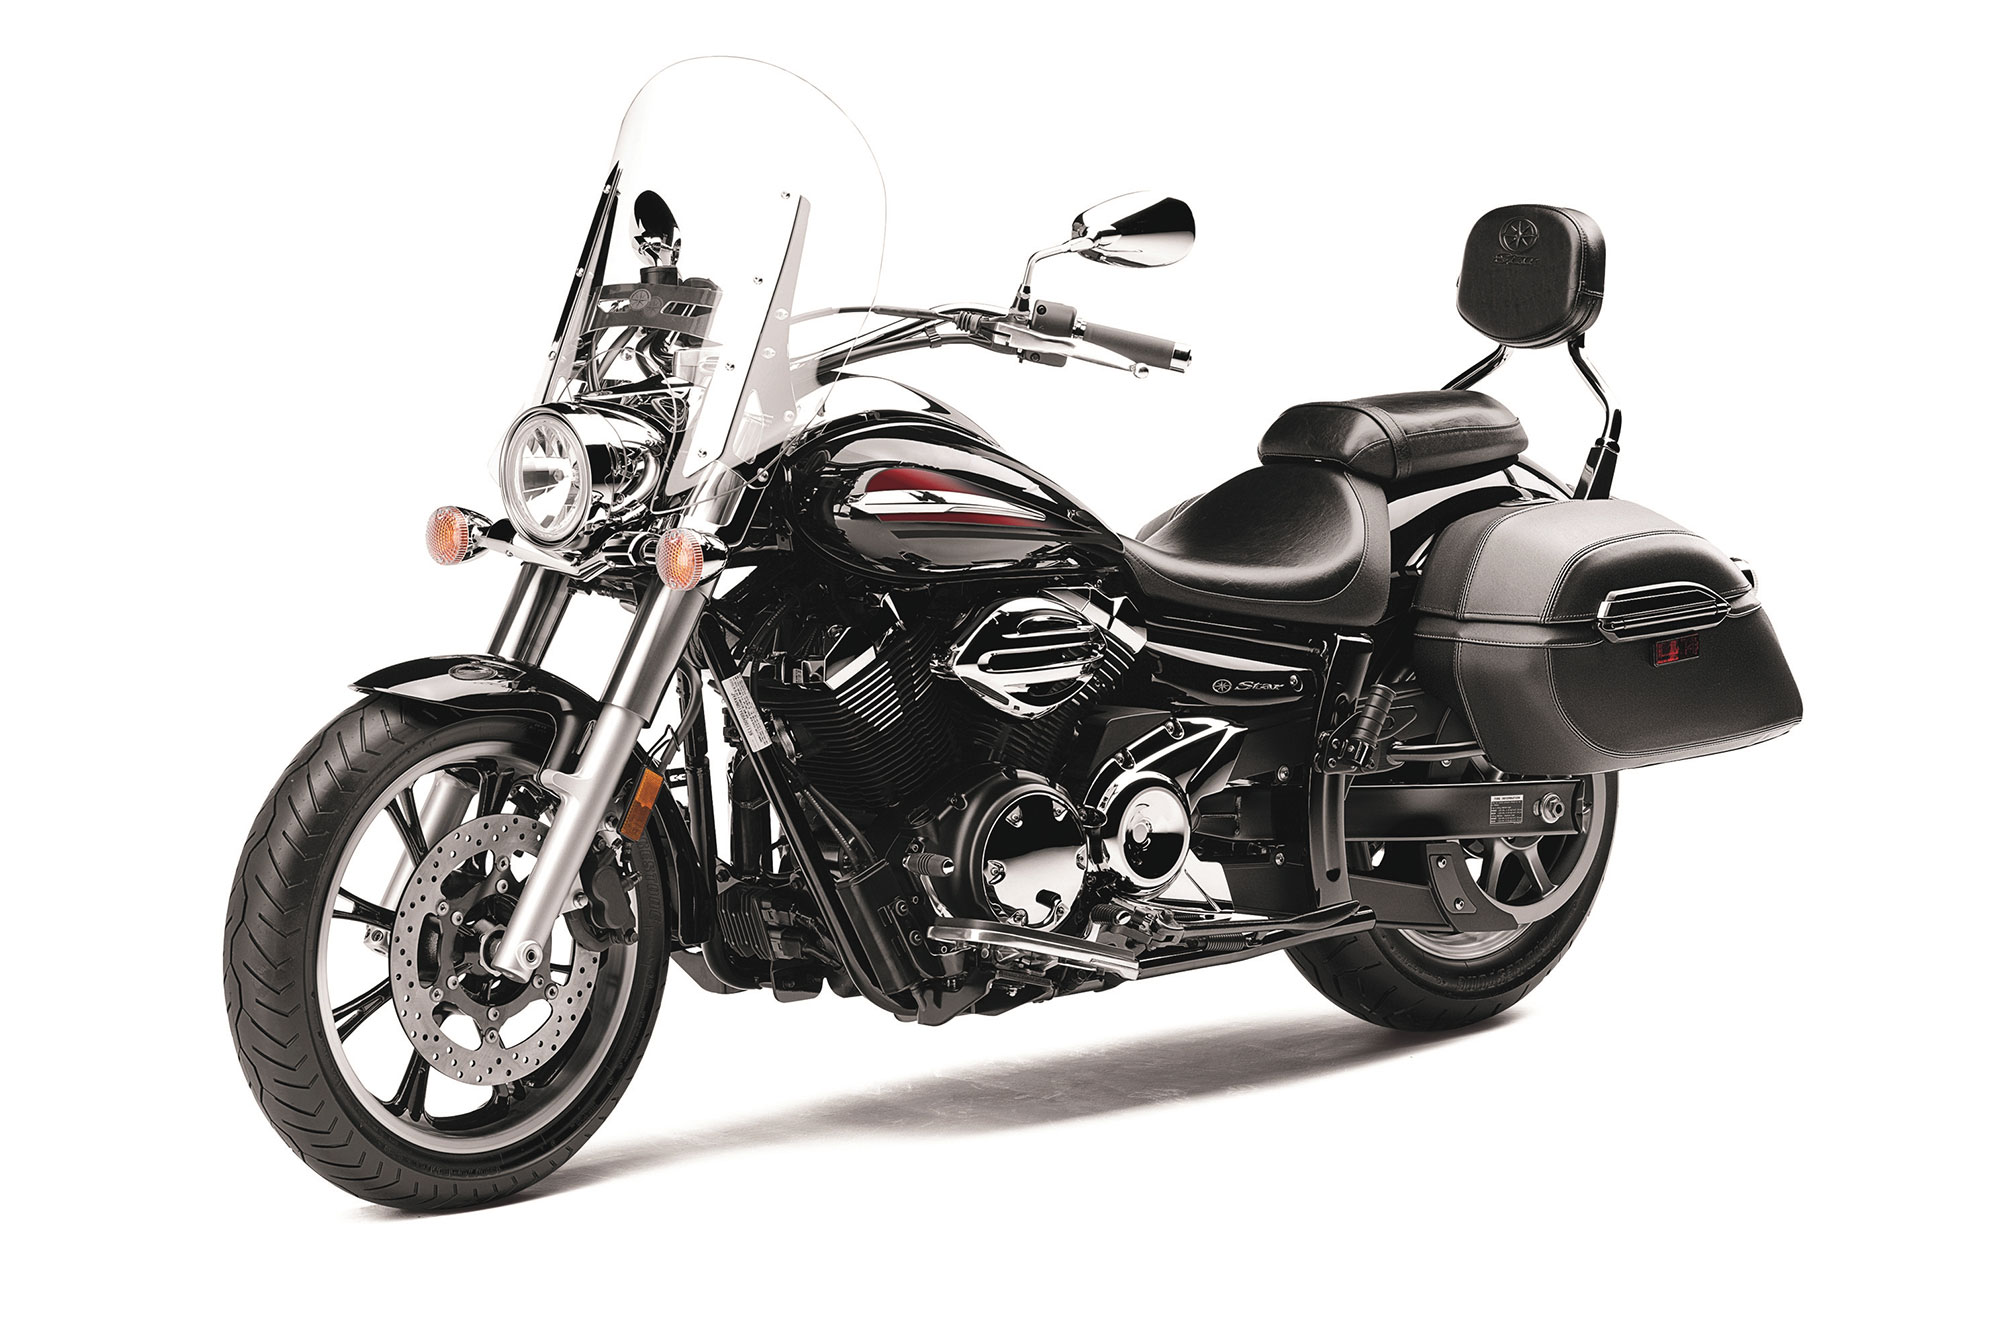 2014 yamaha v star 950 tourer review for Yamaha motorcycle store near me